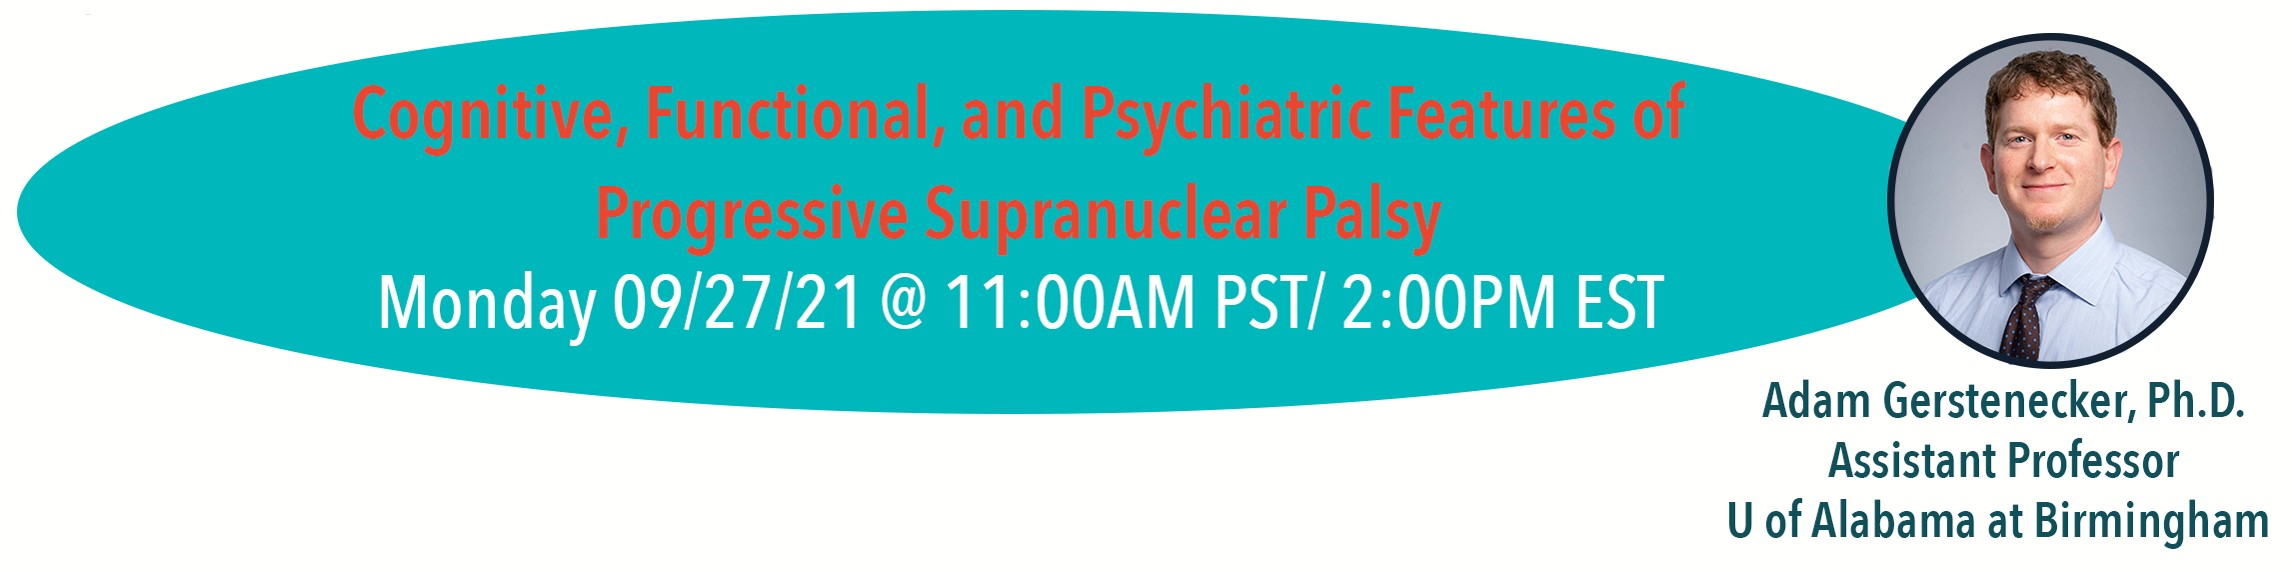 Cognitive, functional, and psychiatric features of progressive supranuclear palsy with Dr. Adam Gerstenecker